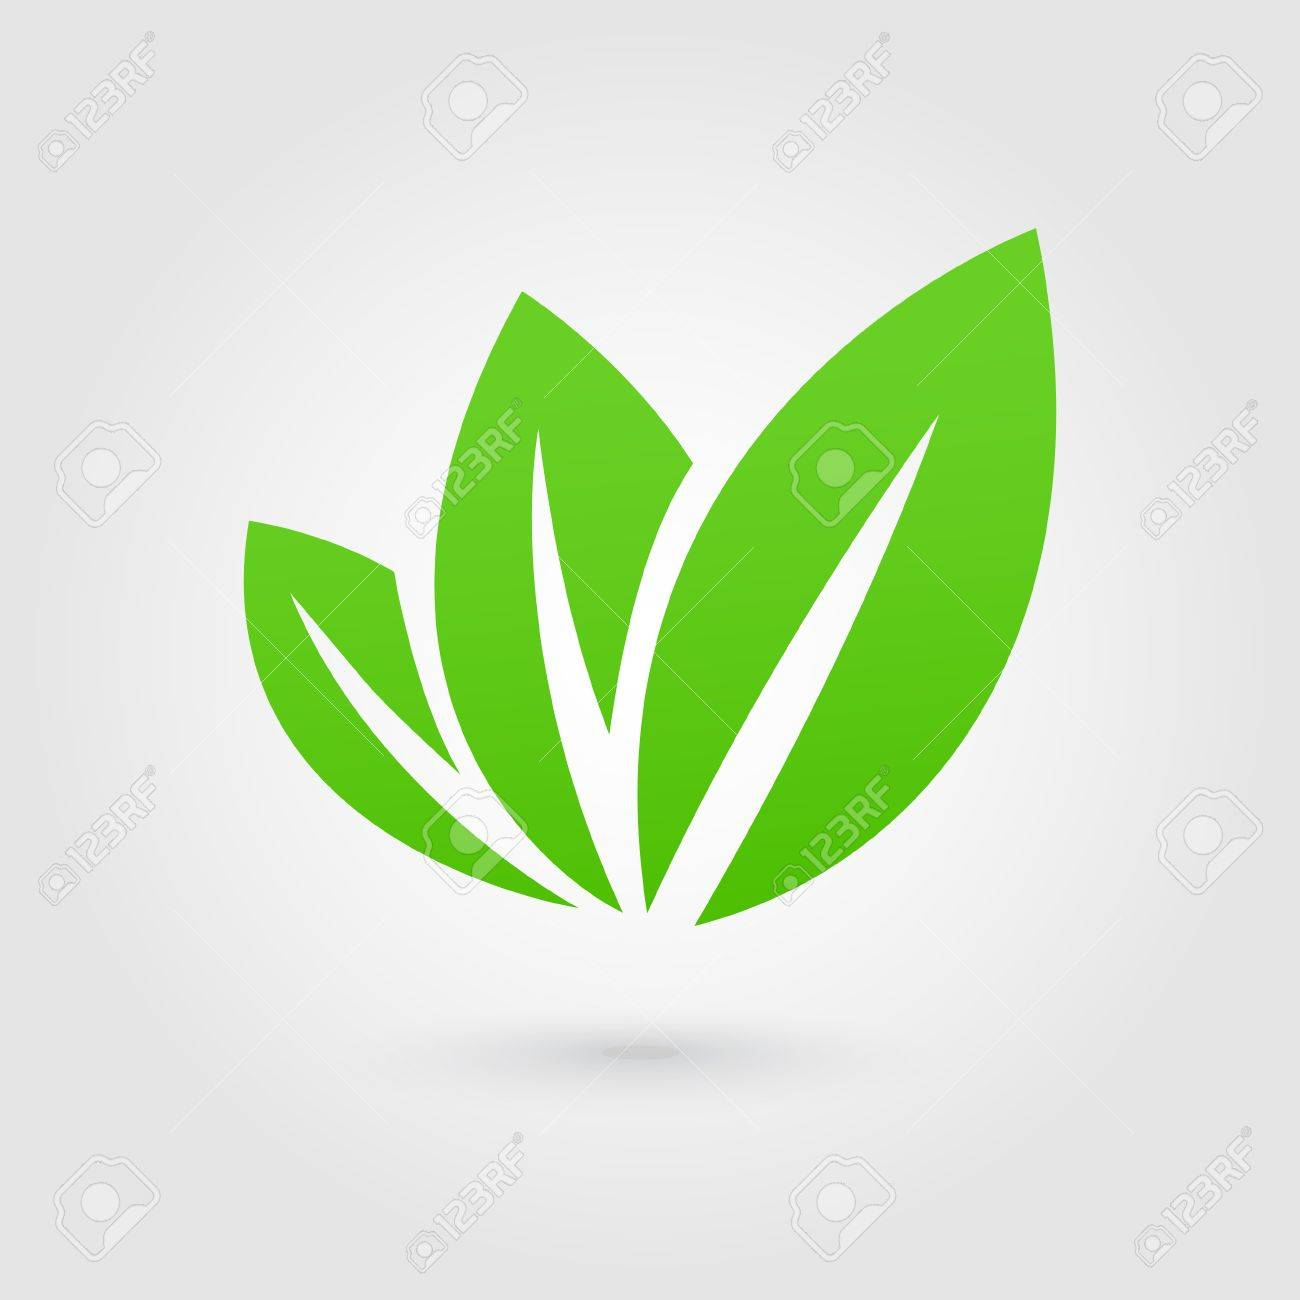 Eco icon green leaf vector illustration isolated - 36626836